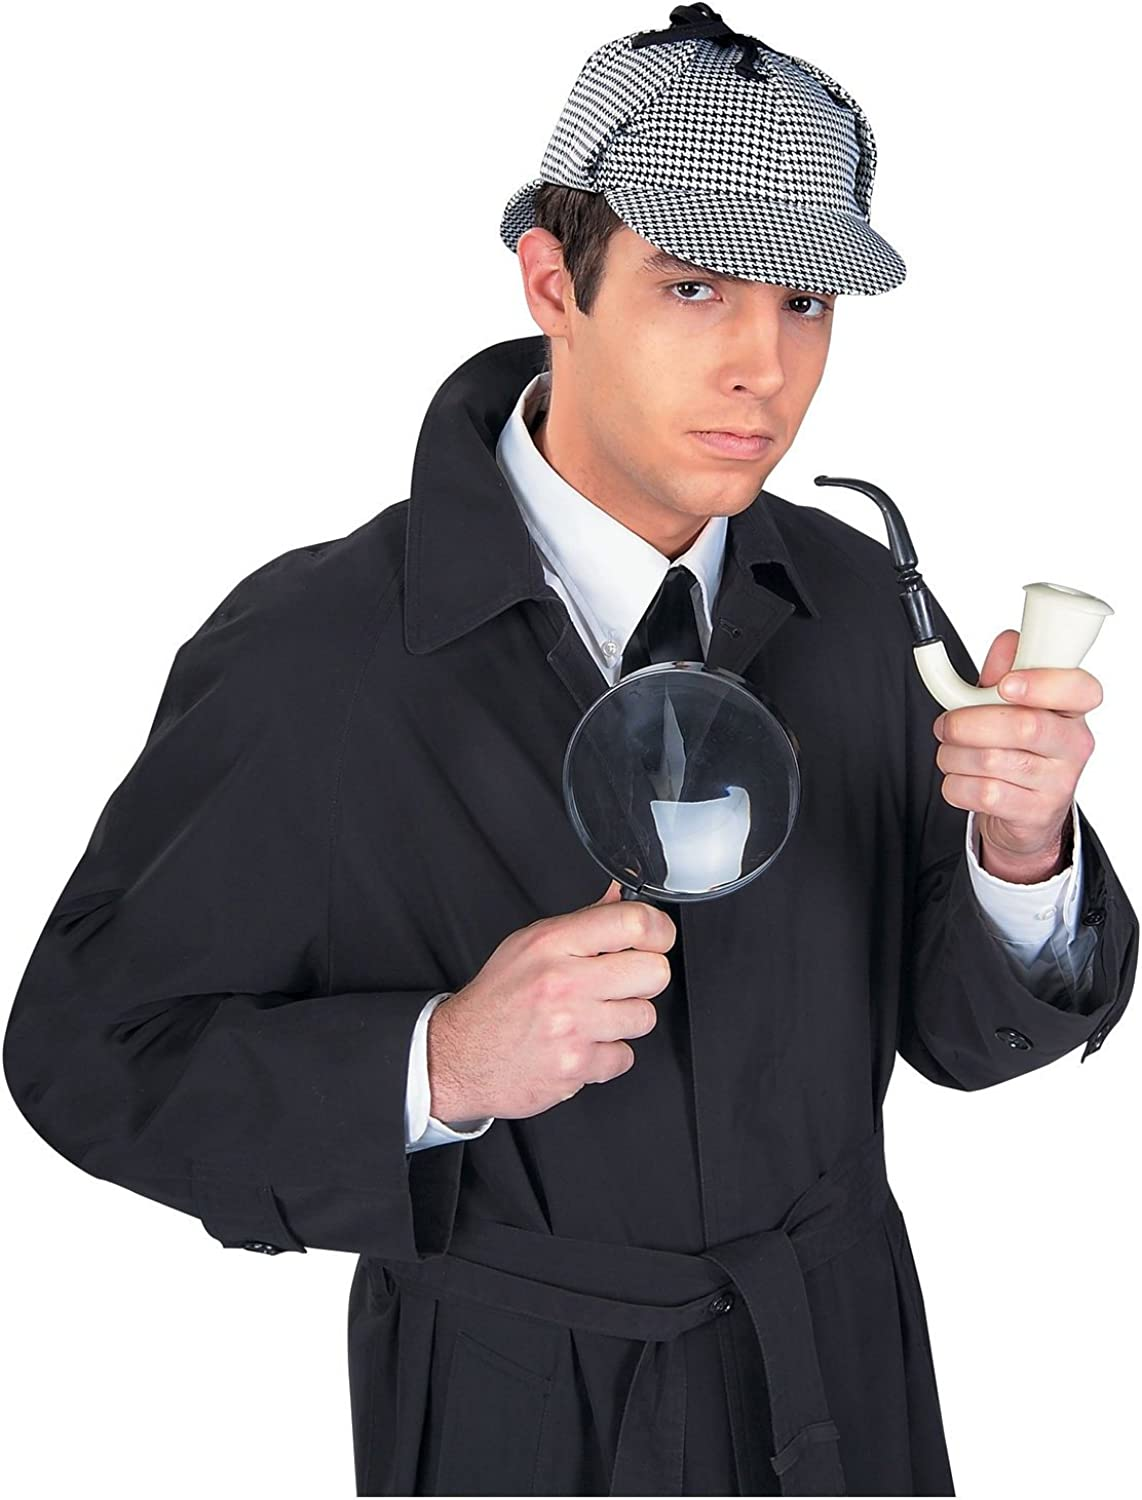 Sherlock Holmes Detective Kit Hat Pipe Magnifying Glass Houndstooth Cap Costume Black and White